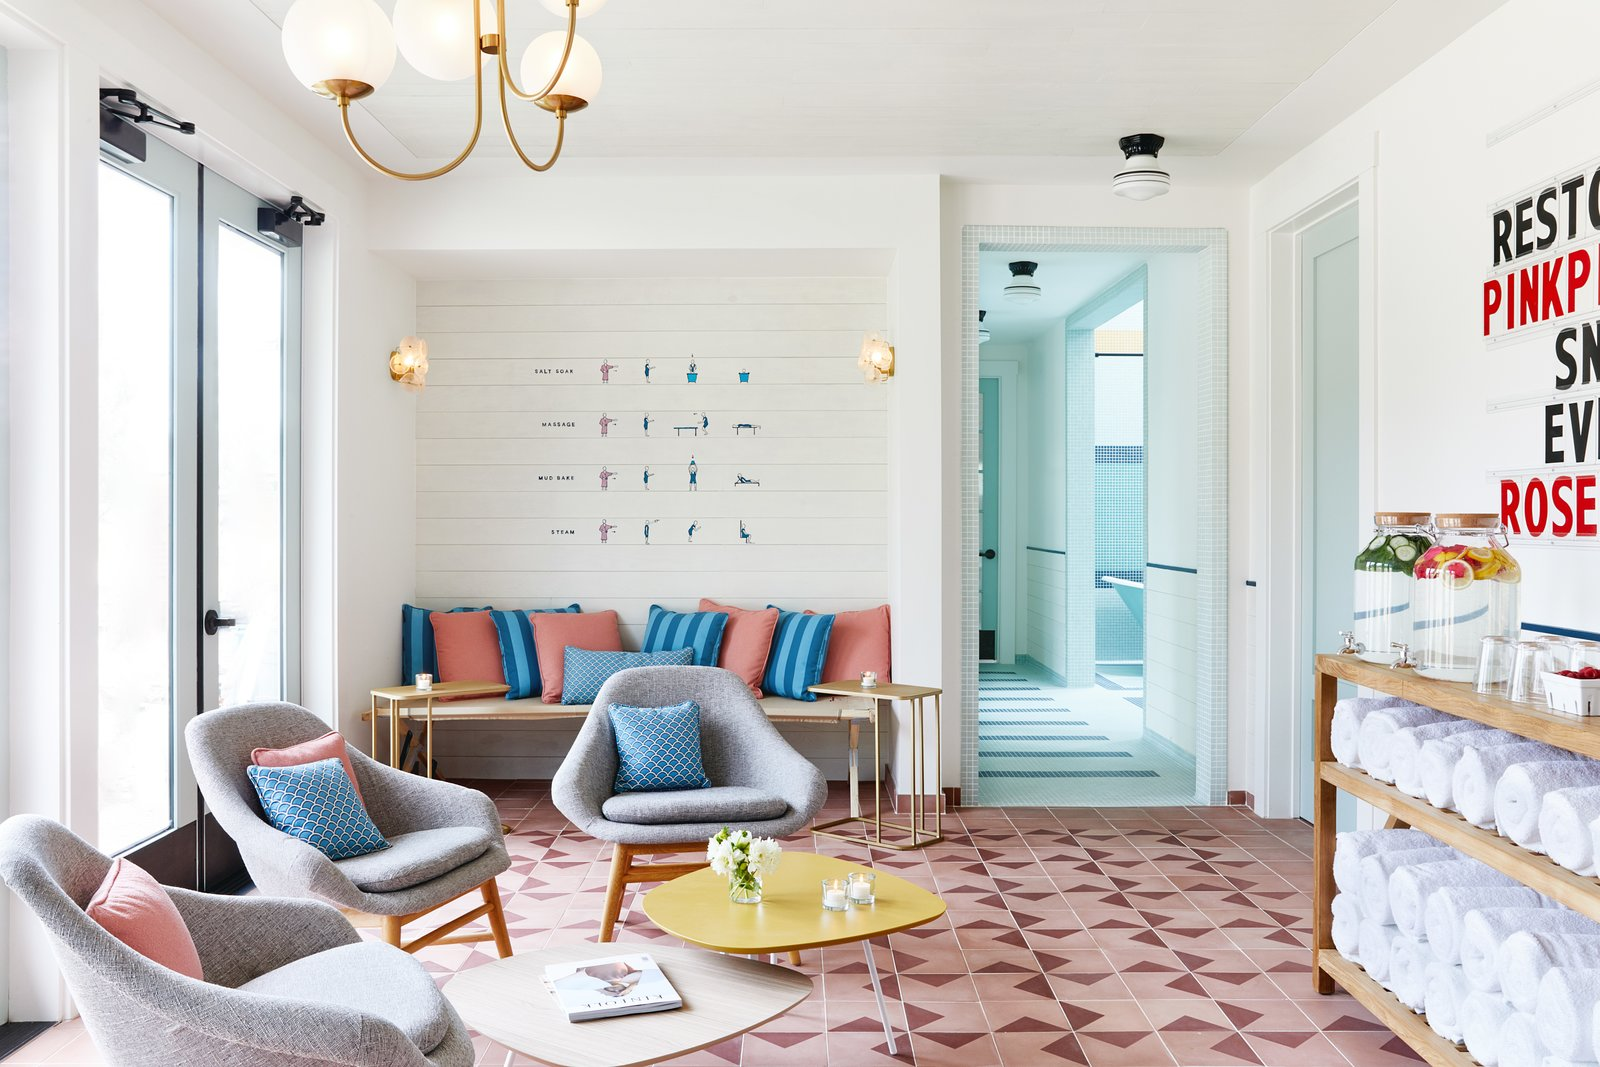 Tagged: Living Room, Chair, Bench, Coffee Tables, Shelves, Ceiling Lighting, End Tables, Pendant Lighting, and Wall Lighting.  Best Photos from A Napa Valley Motor Lodge Reinterprets the Classic Roadside Motel